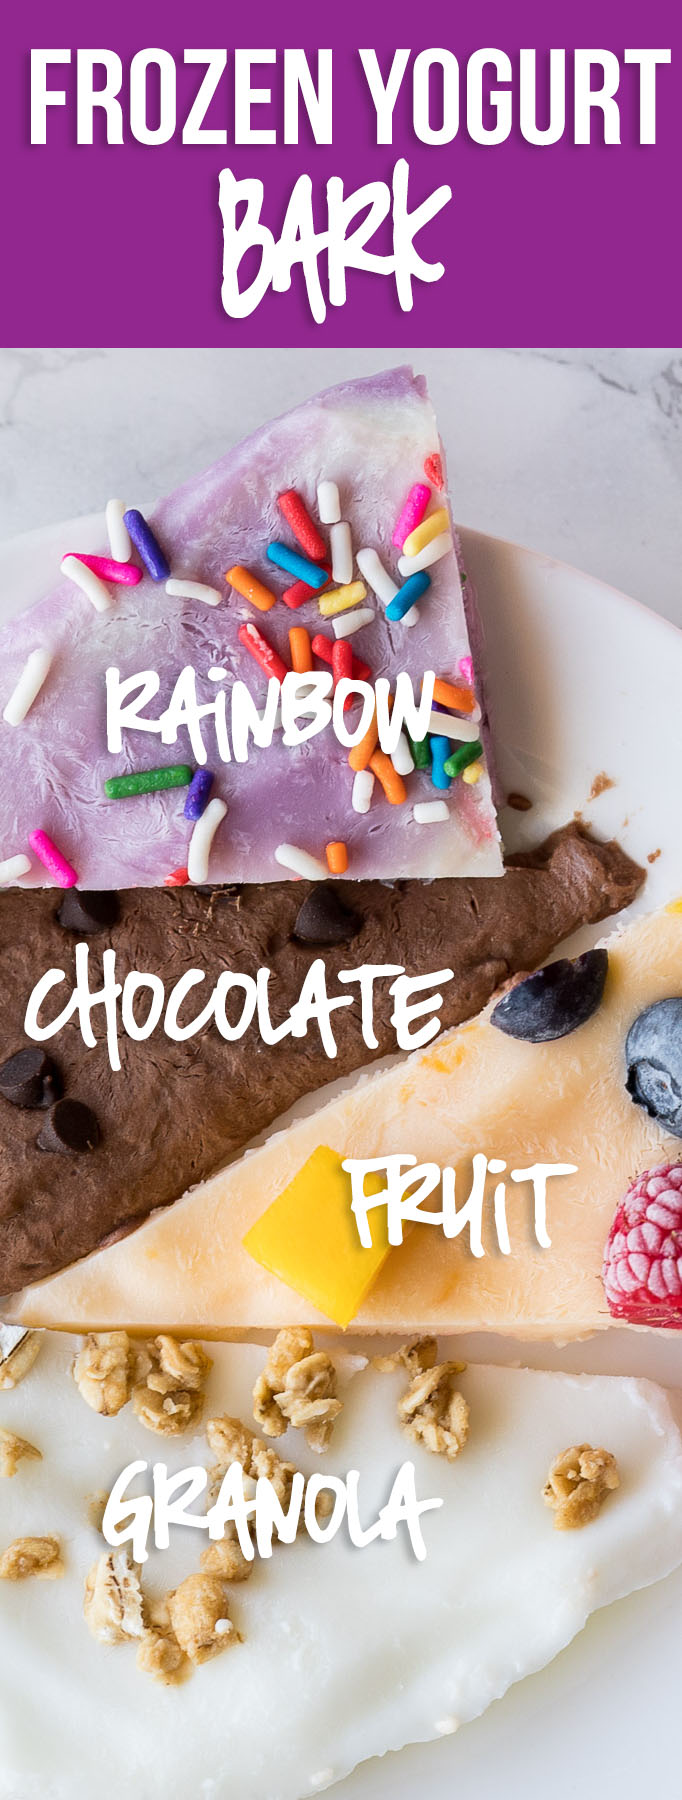 These super easy Frozen Yogurt Bark recipes are 4 different varieties made with no added sugar that even the pickiest of eaters would enjoy!